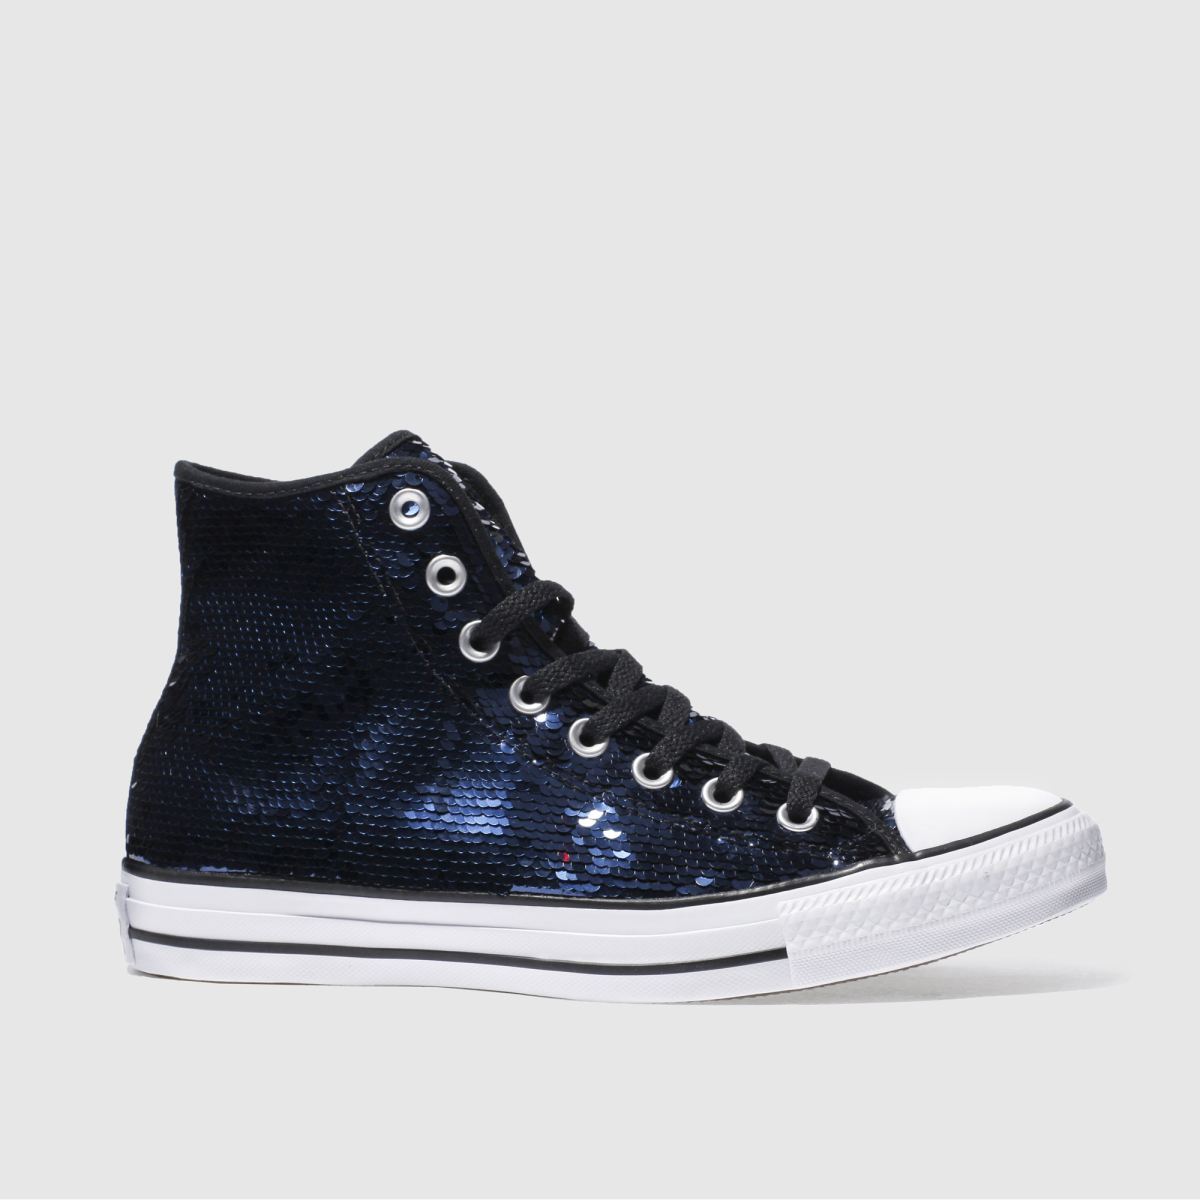 Converse Navy & White All Star Sequin Hi Trainers